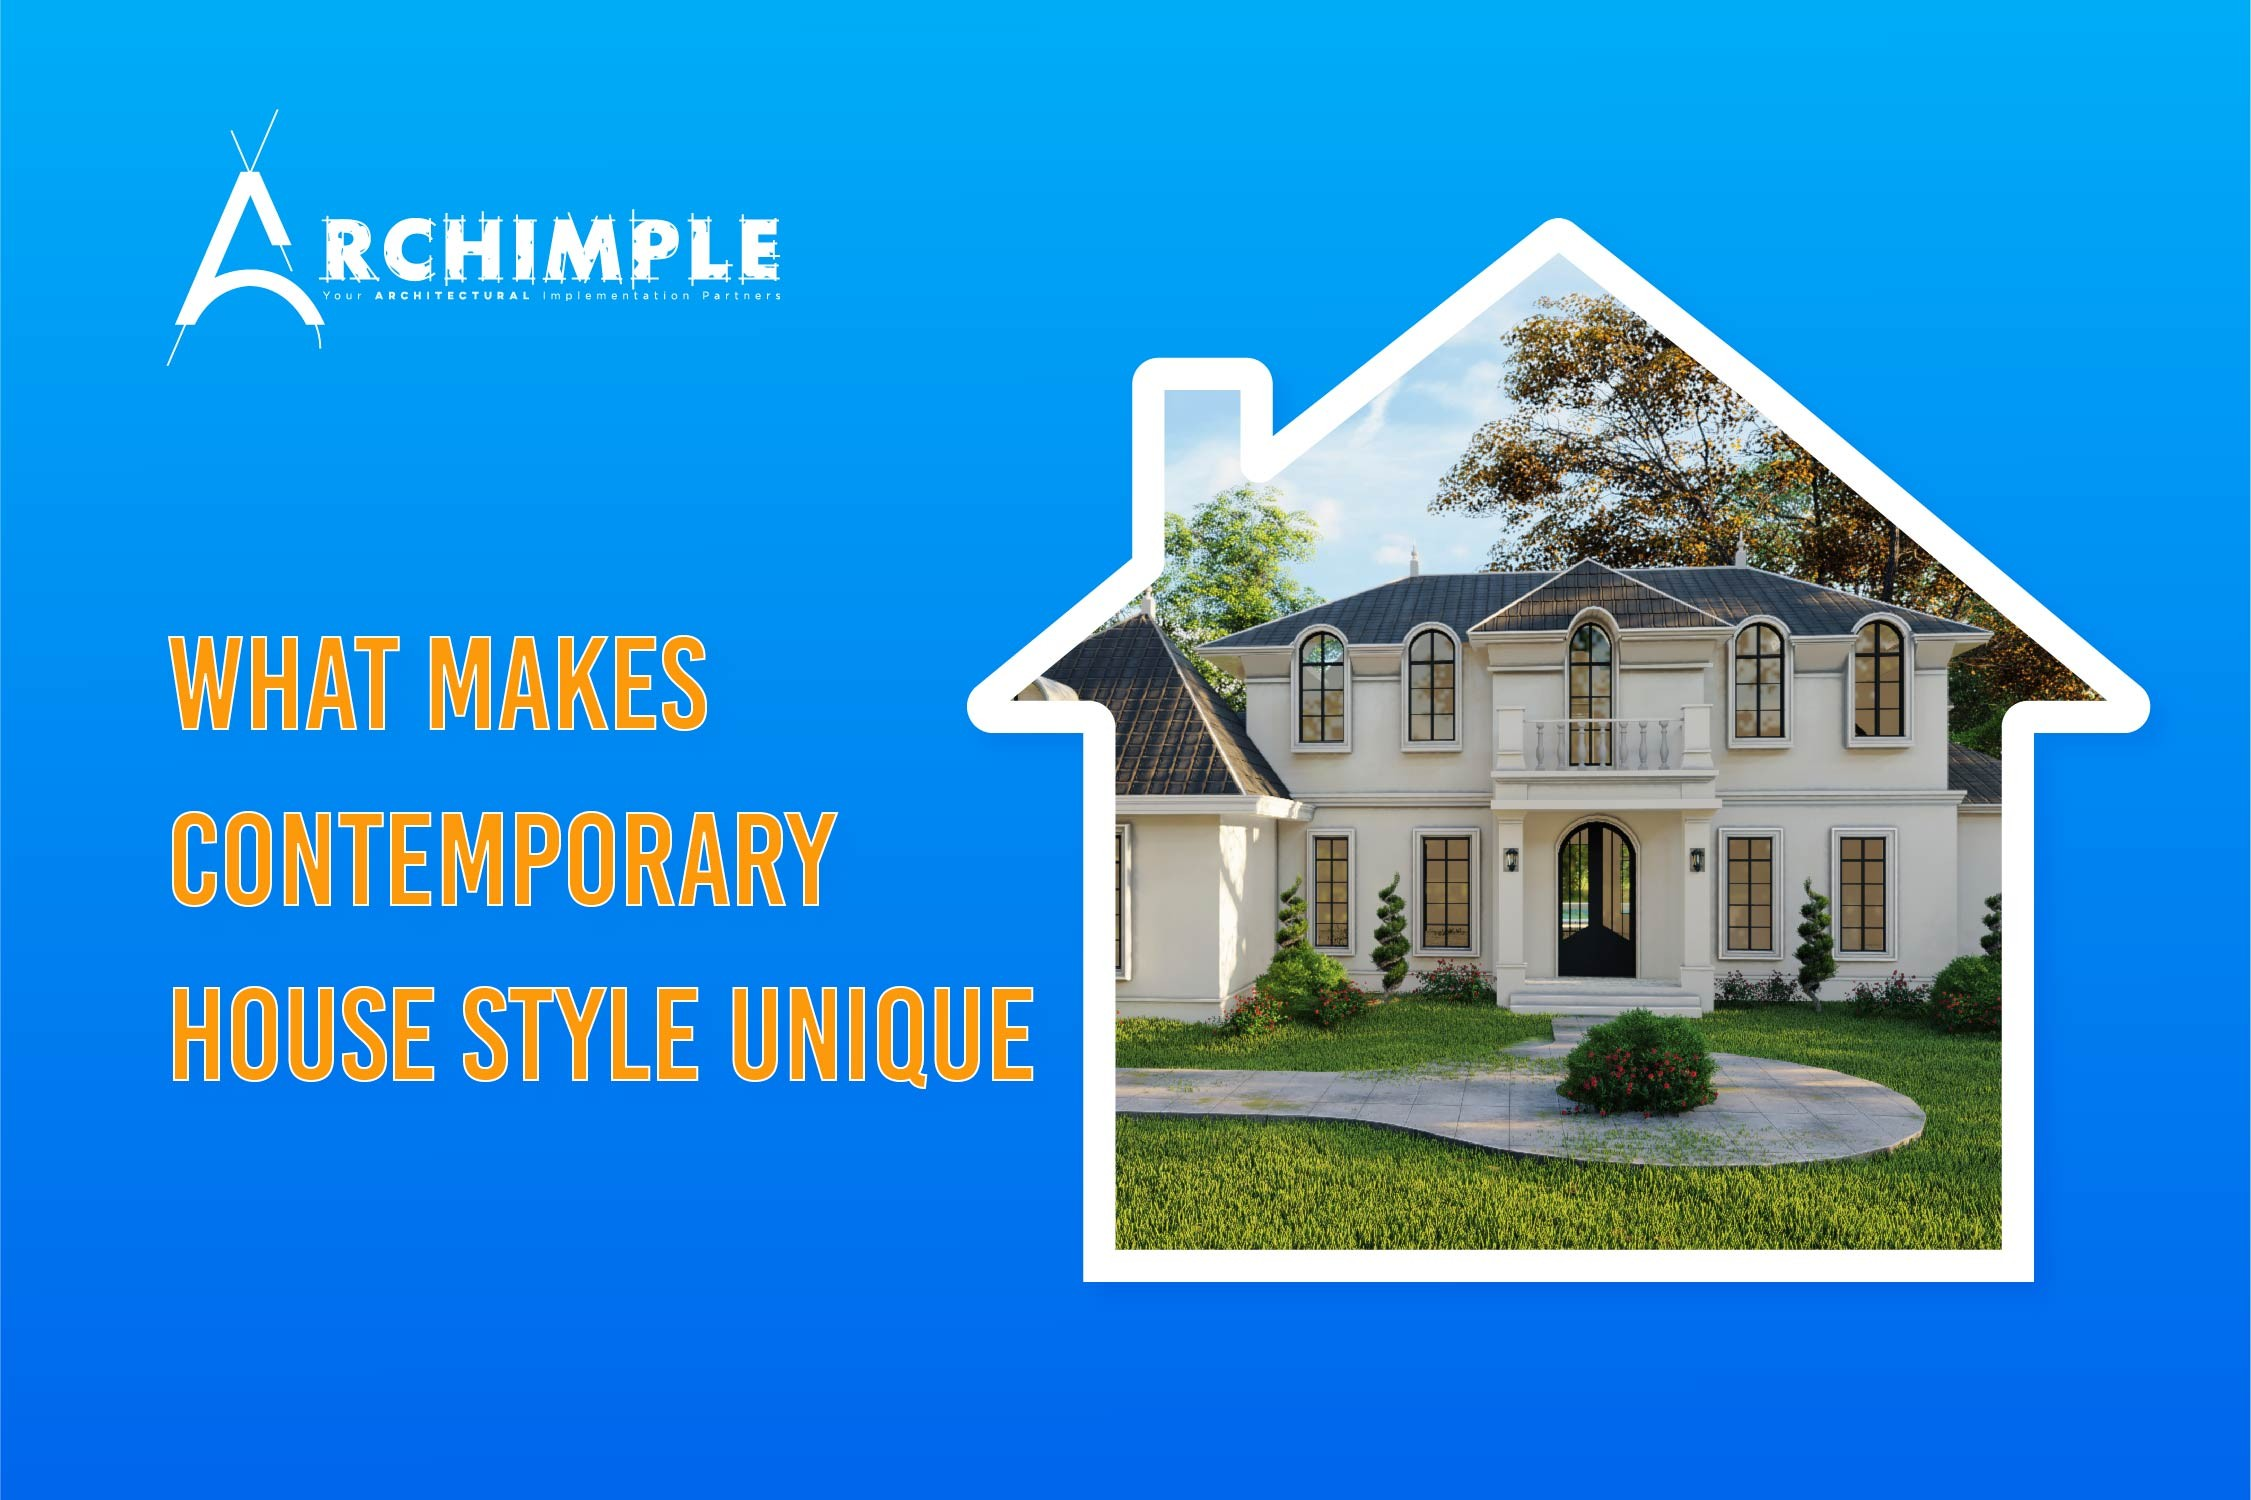 What Makes Contemporary House Style Unique?